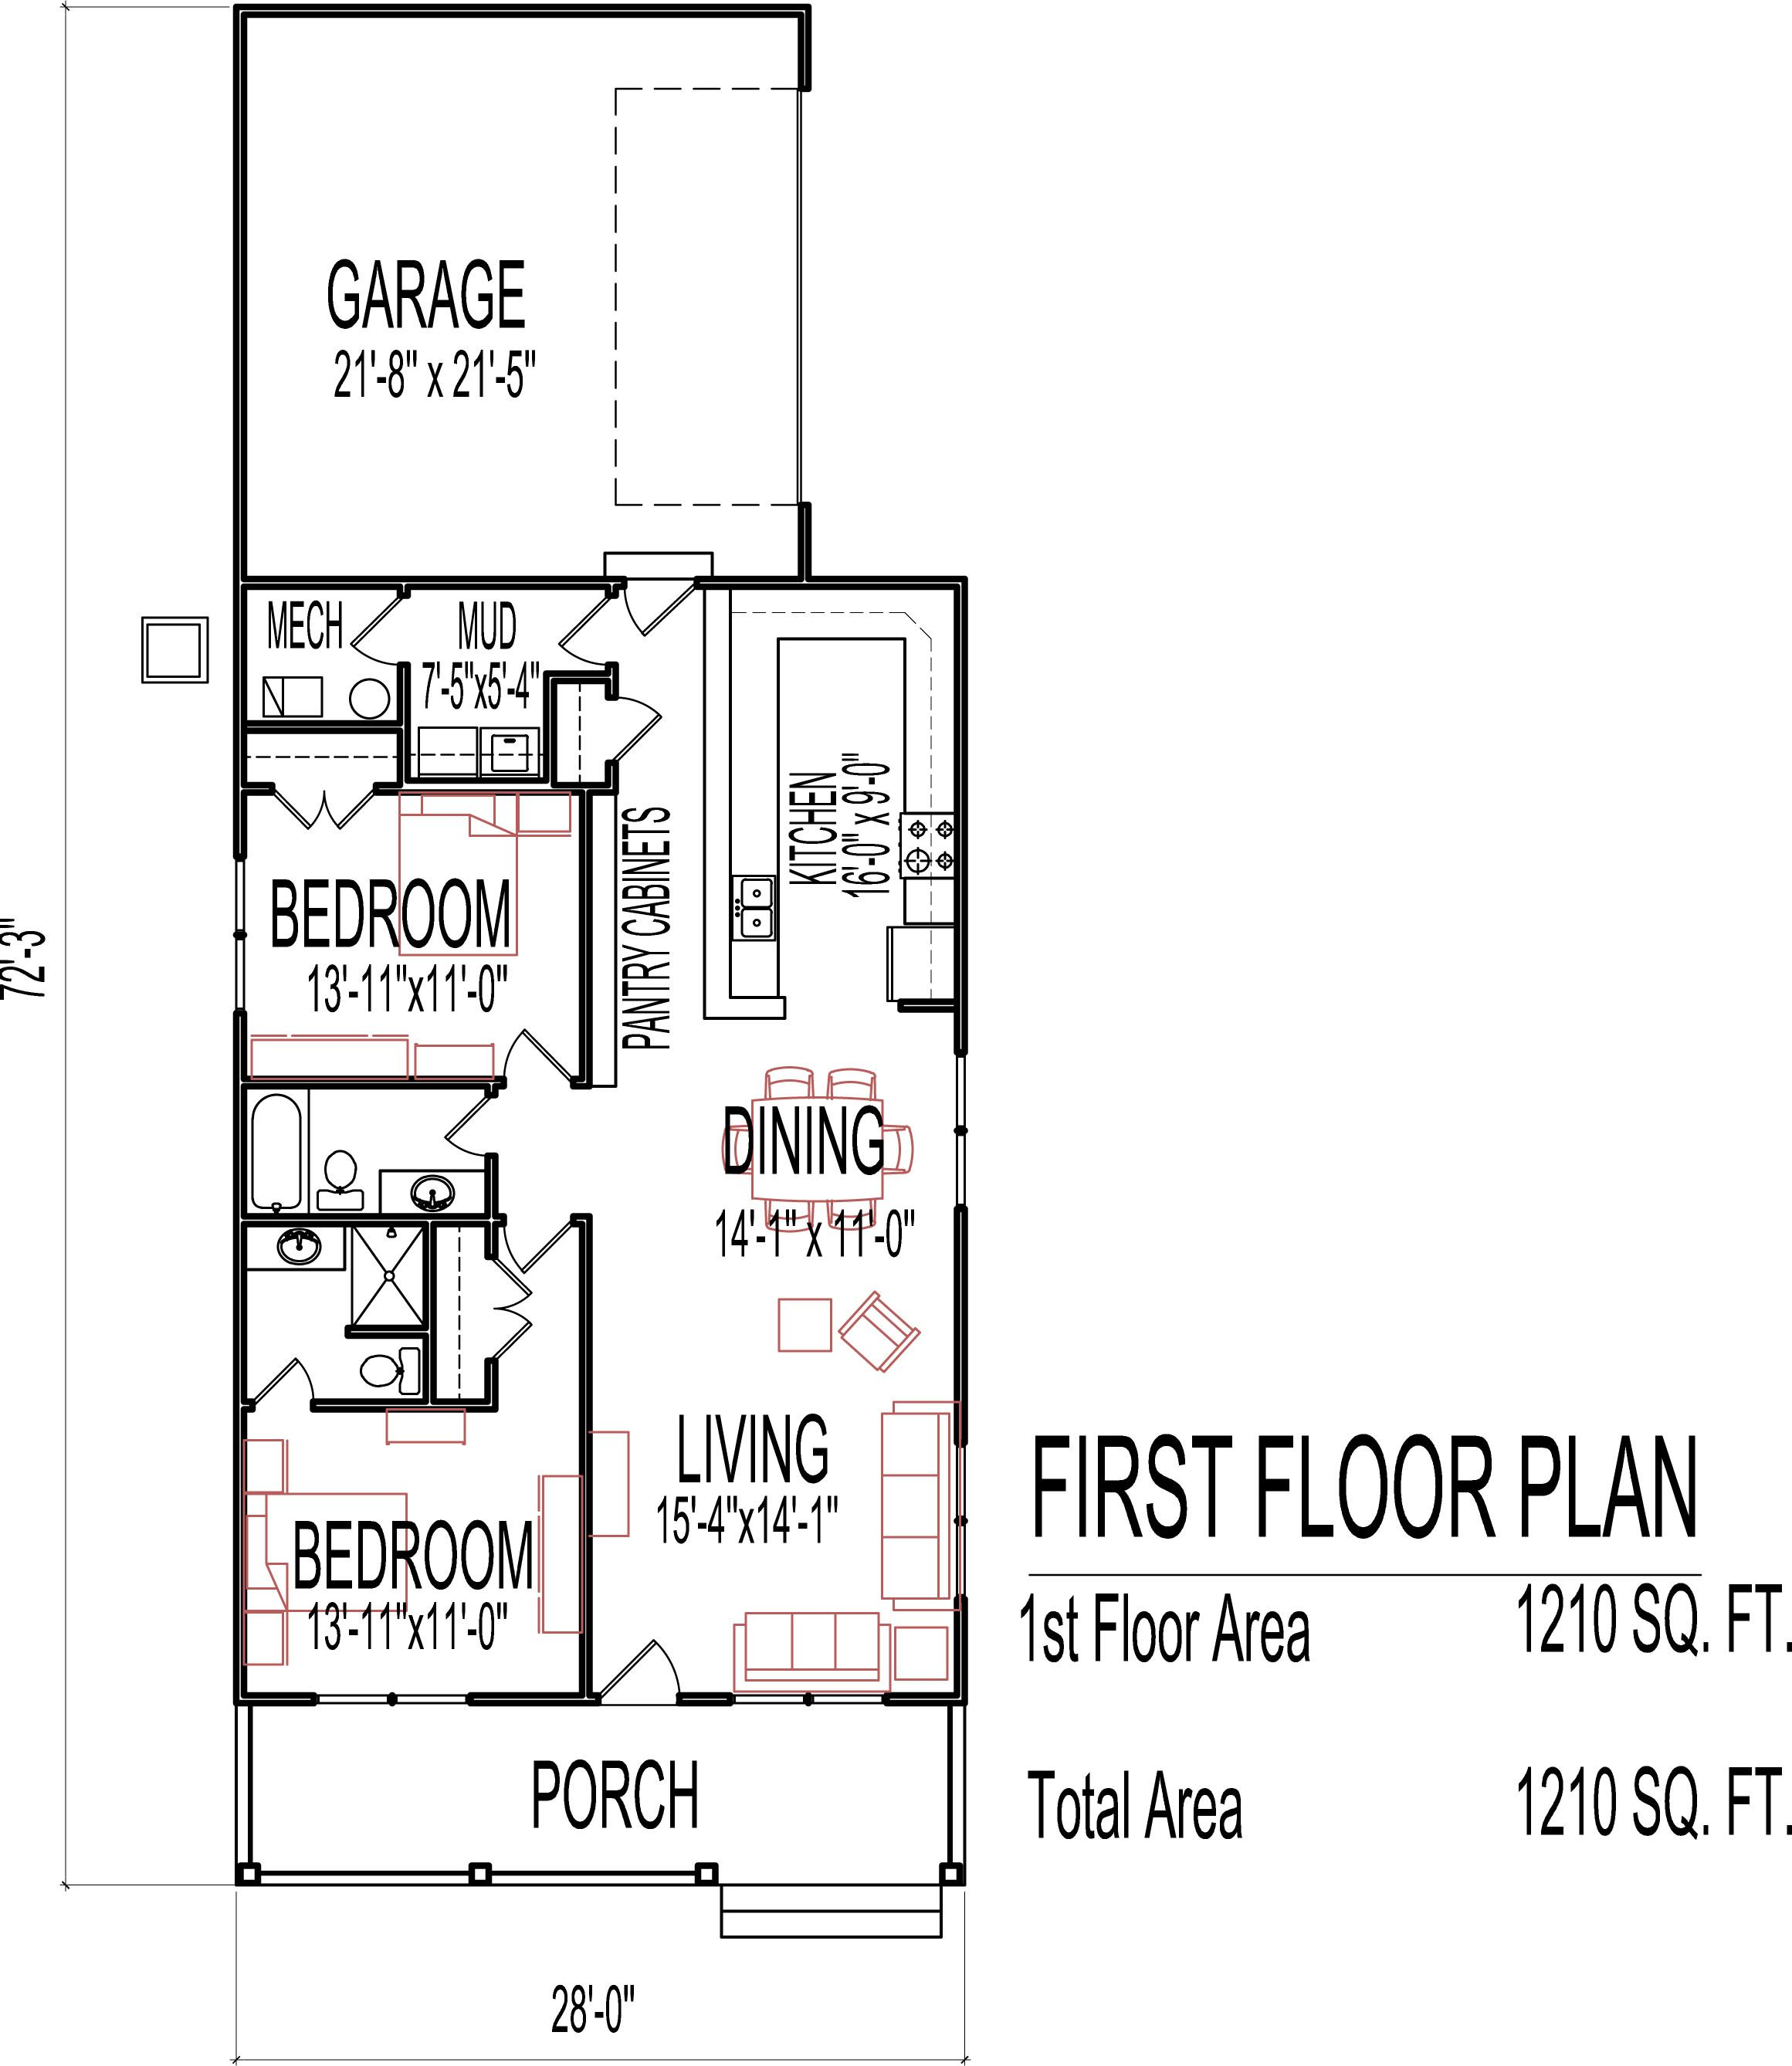 small low cost economical 2 bedroom 2 bath 1200 sq ft single story house floor plans - Small Home 2